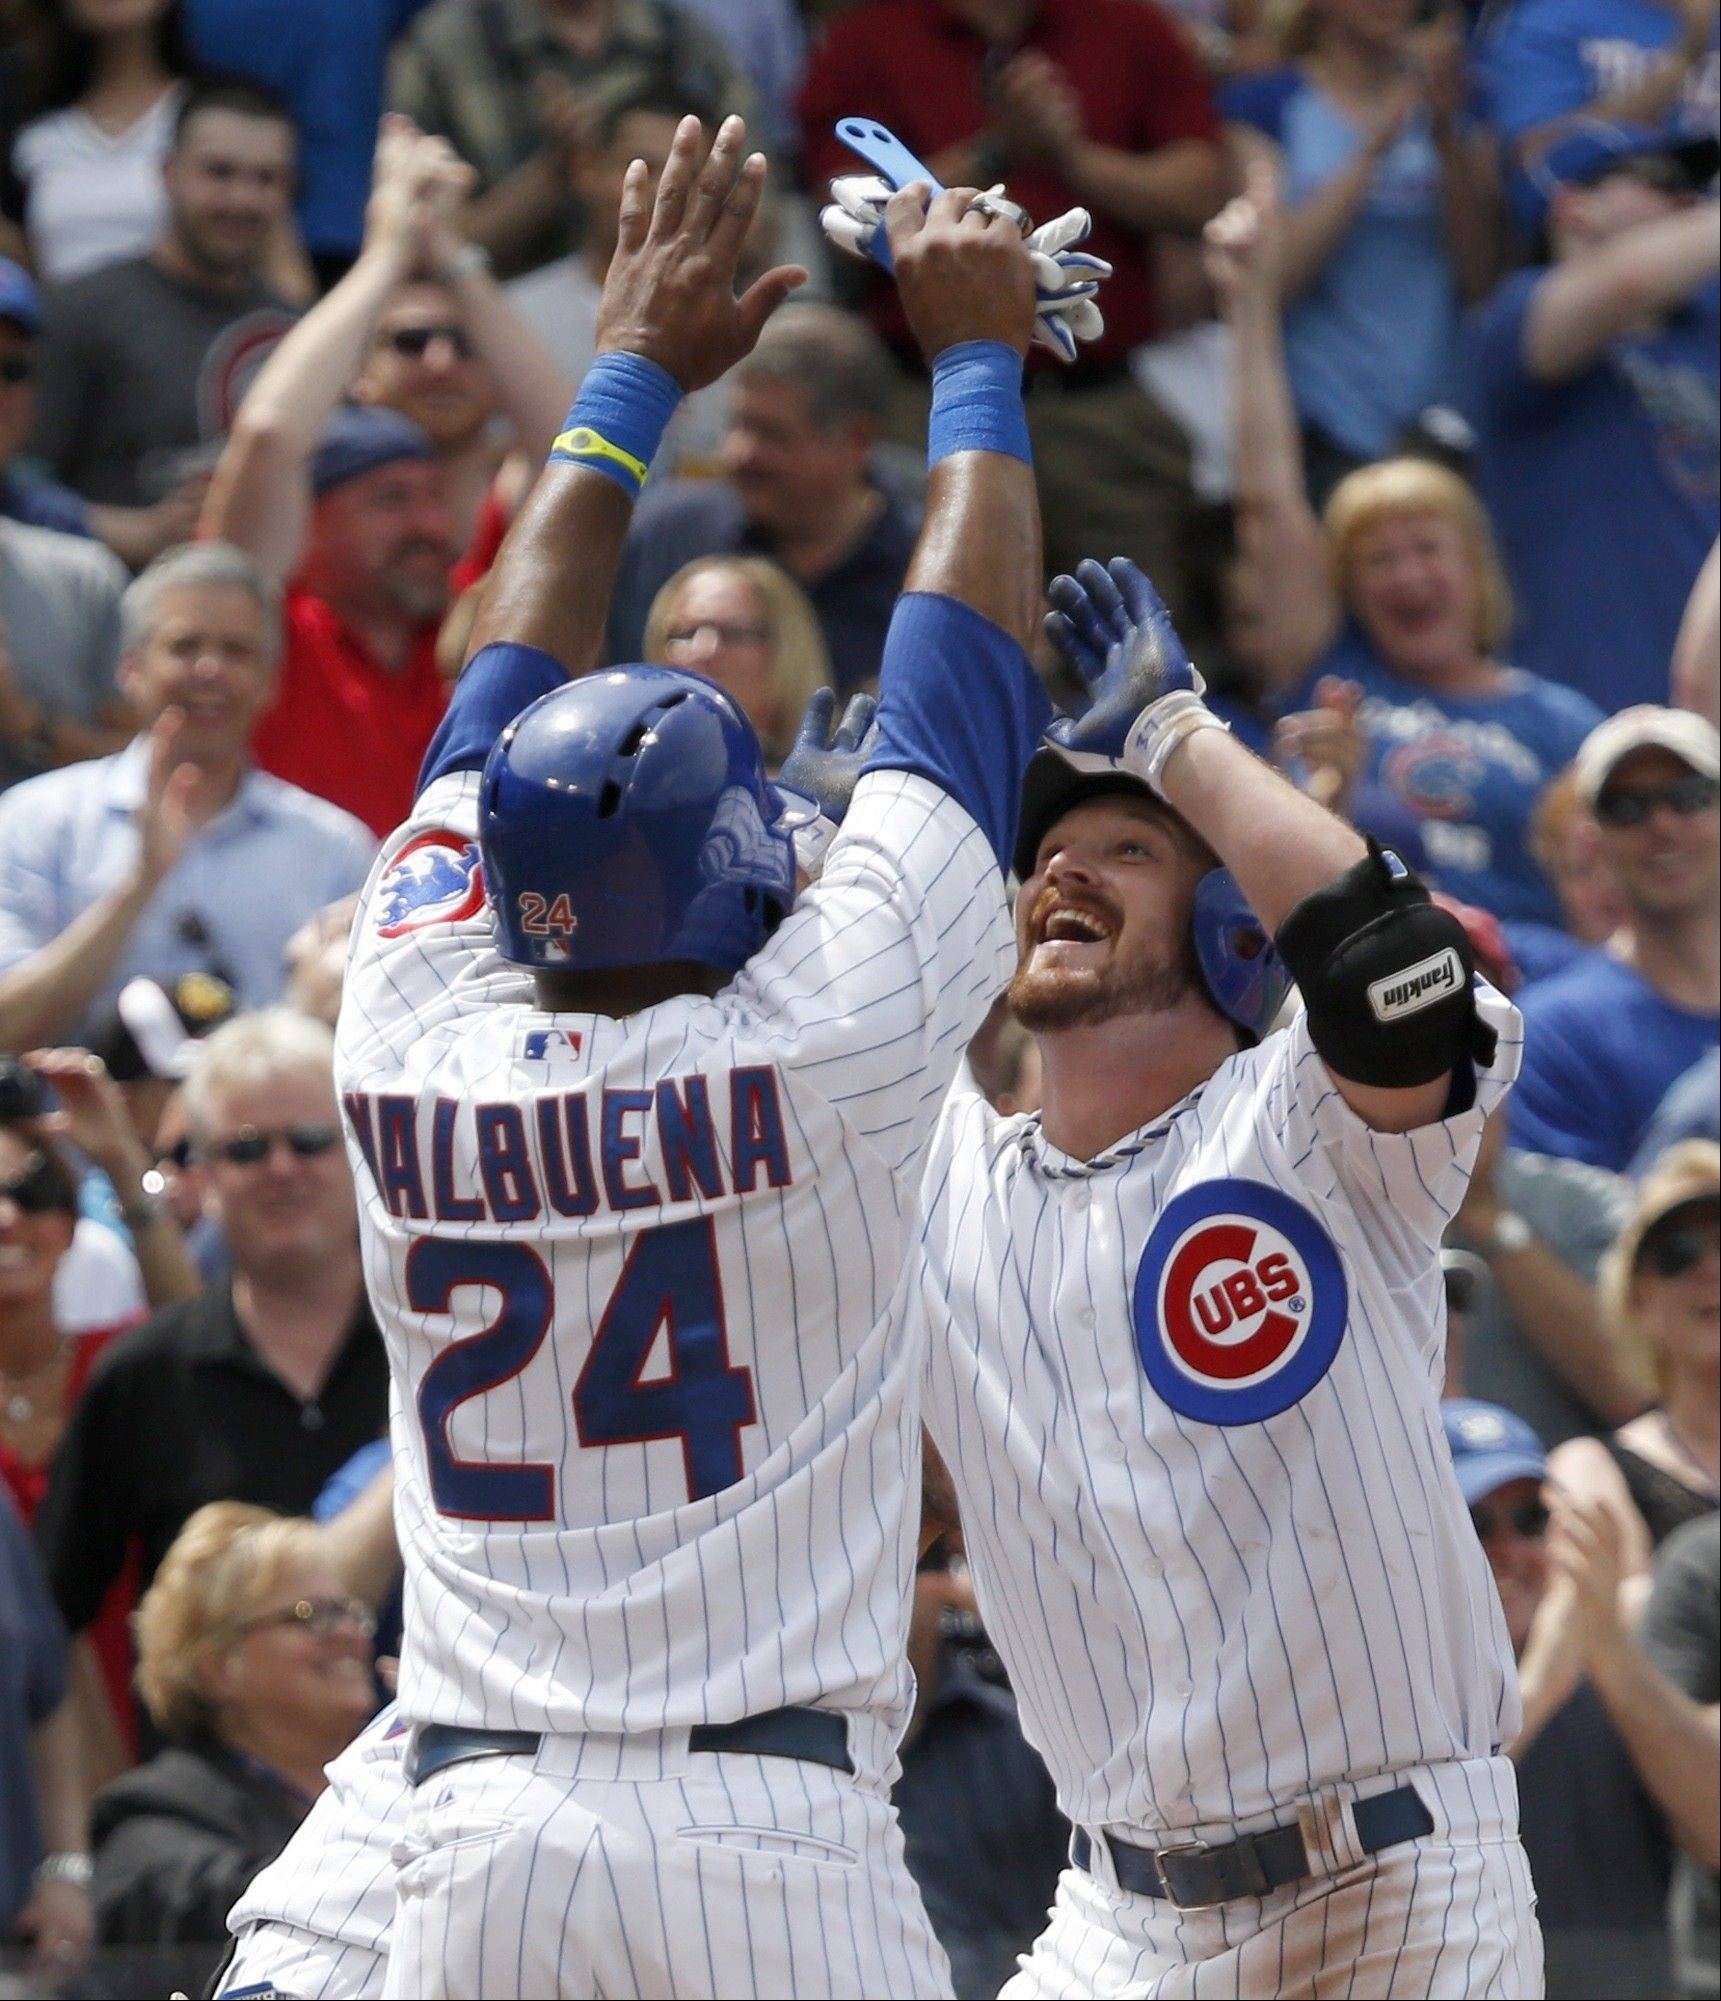 Cubs pitcher Travis Wood, right, celebrates Thursday at home plate with Luis Valbuena after hitting a grand slam off White Sox starting pitcher Jake Peavy during the fourth inning at Wrigley Field. The Cubs' Darwin Barney and Welington Castillo also scored on the homer.